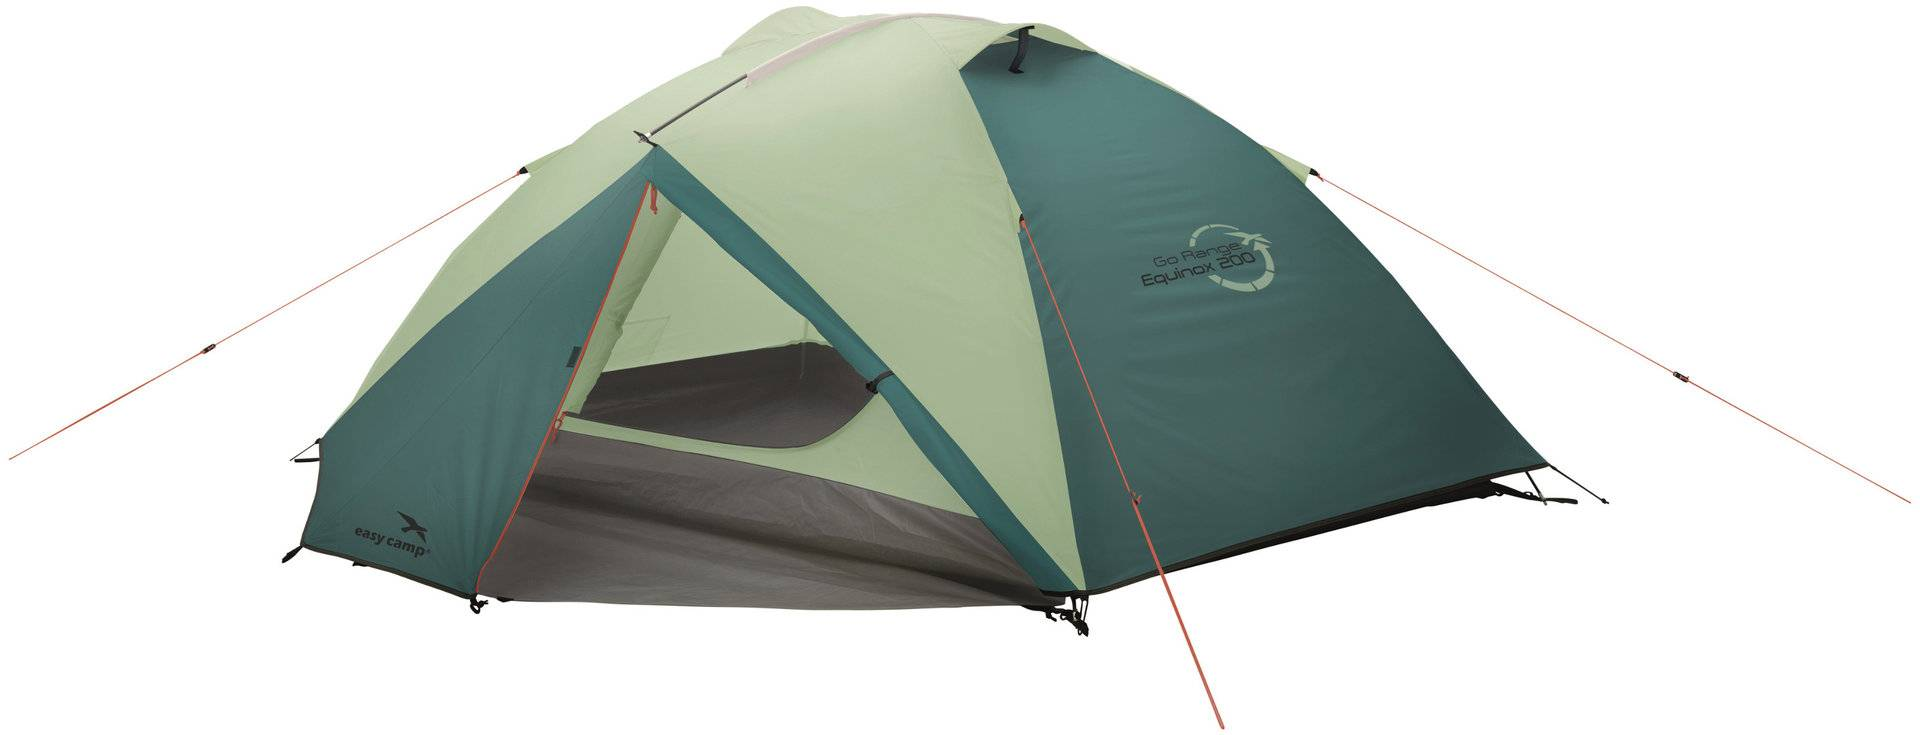 Easy Camp Equinox 200 tenda Verde unica taglia